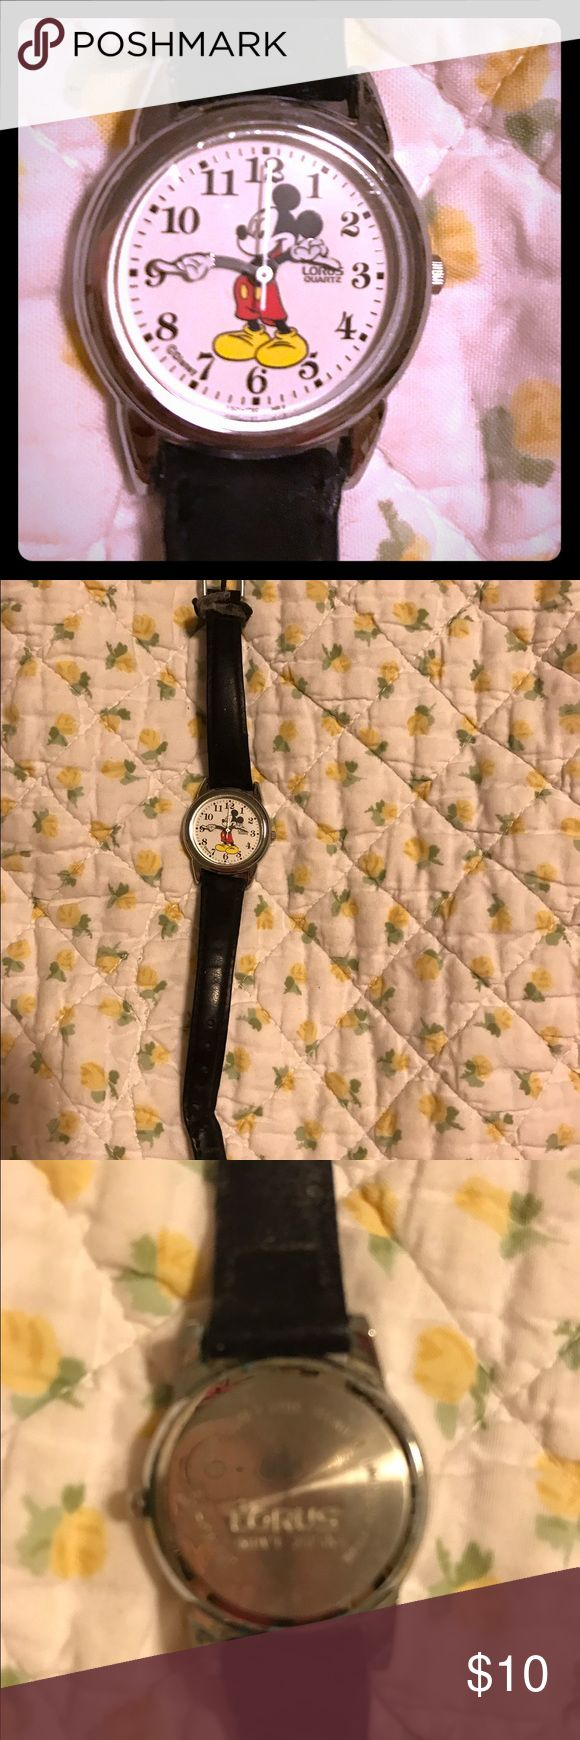 Lorus Mickey Mouse Watch Vintage Mickey Mouse watch. Needs battery and band because band is very worn. lorus Accessories Watches